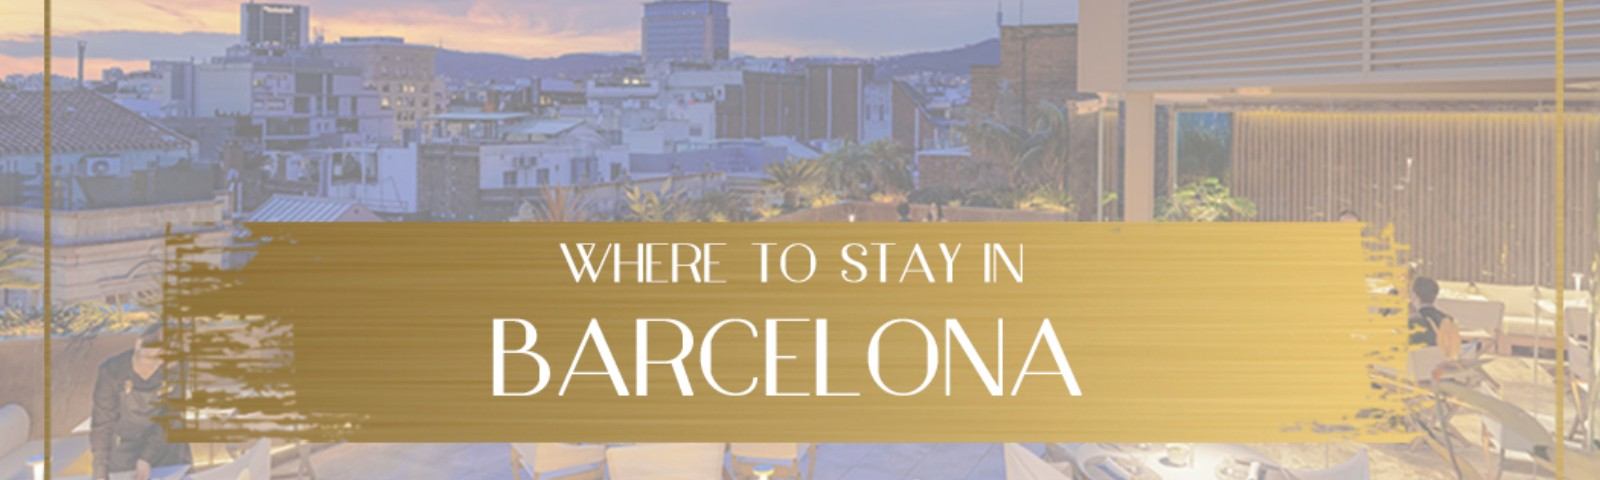 Where to stay in Barcelona, main